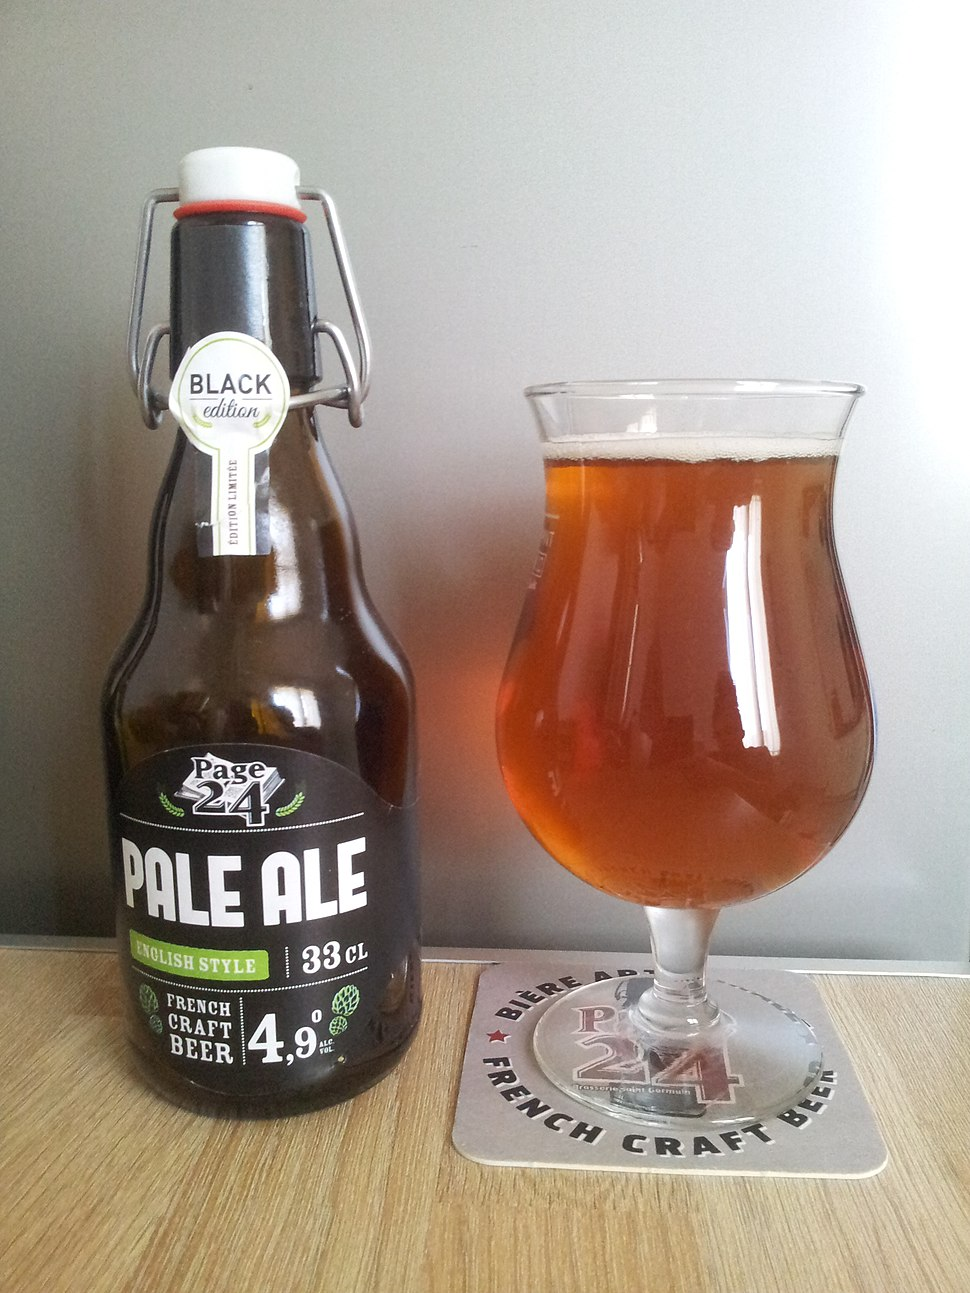 Page 24 Pale Ale beer